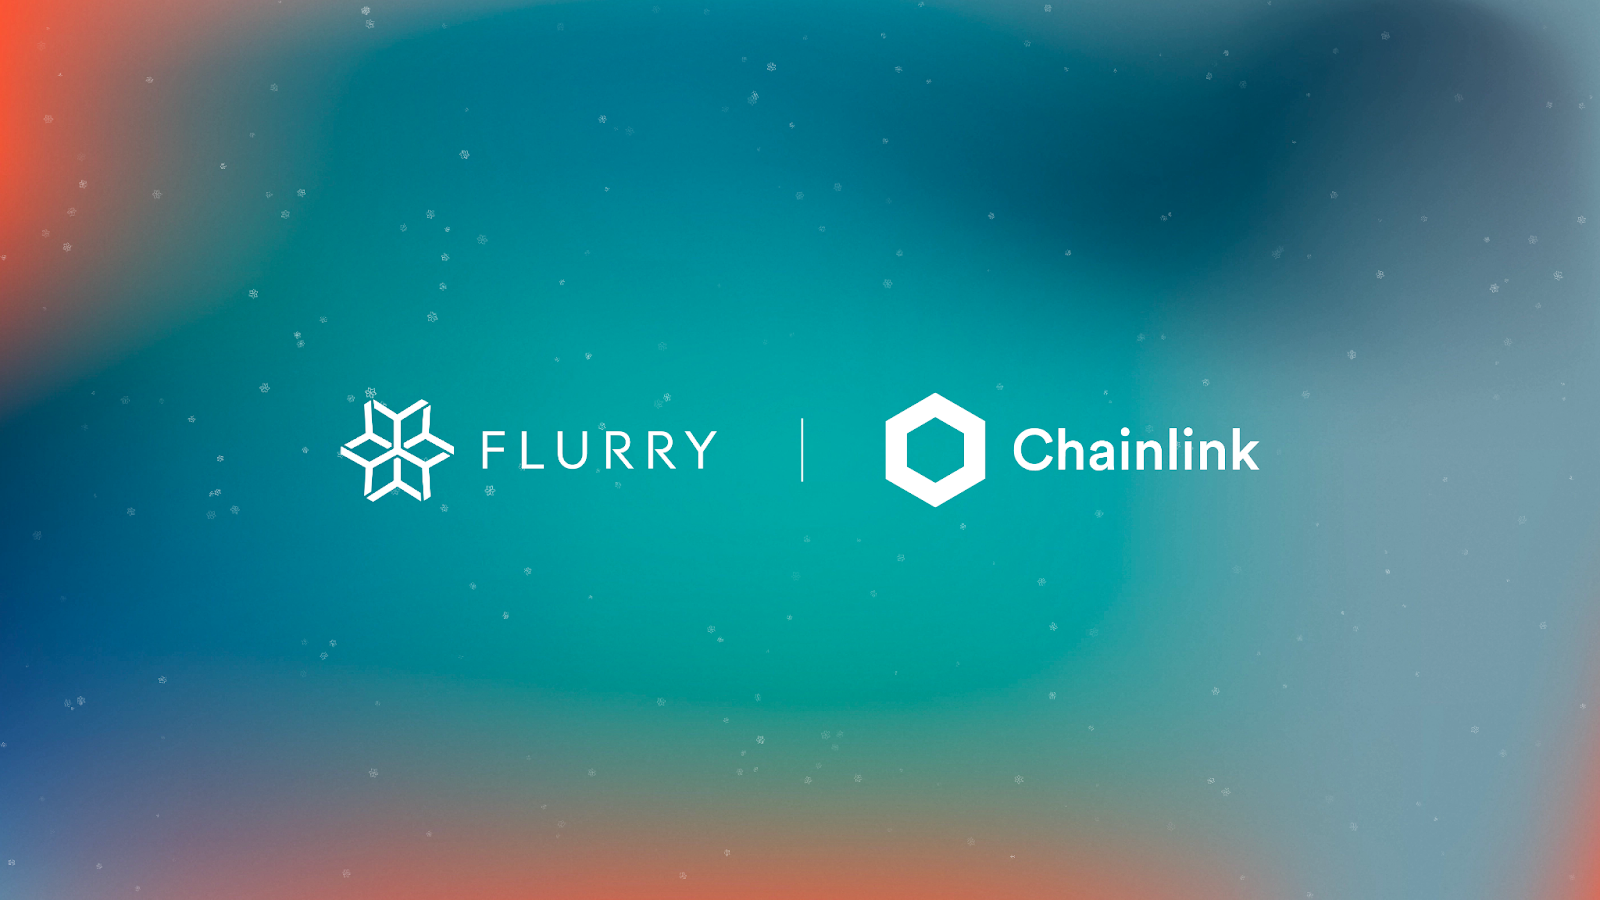 Flurry Finance Will Integrate Chainlink Keepers to Automate the Daily Rebasing of rhoTokens